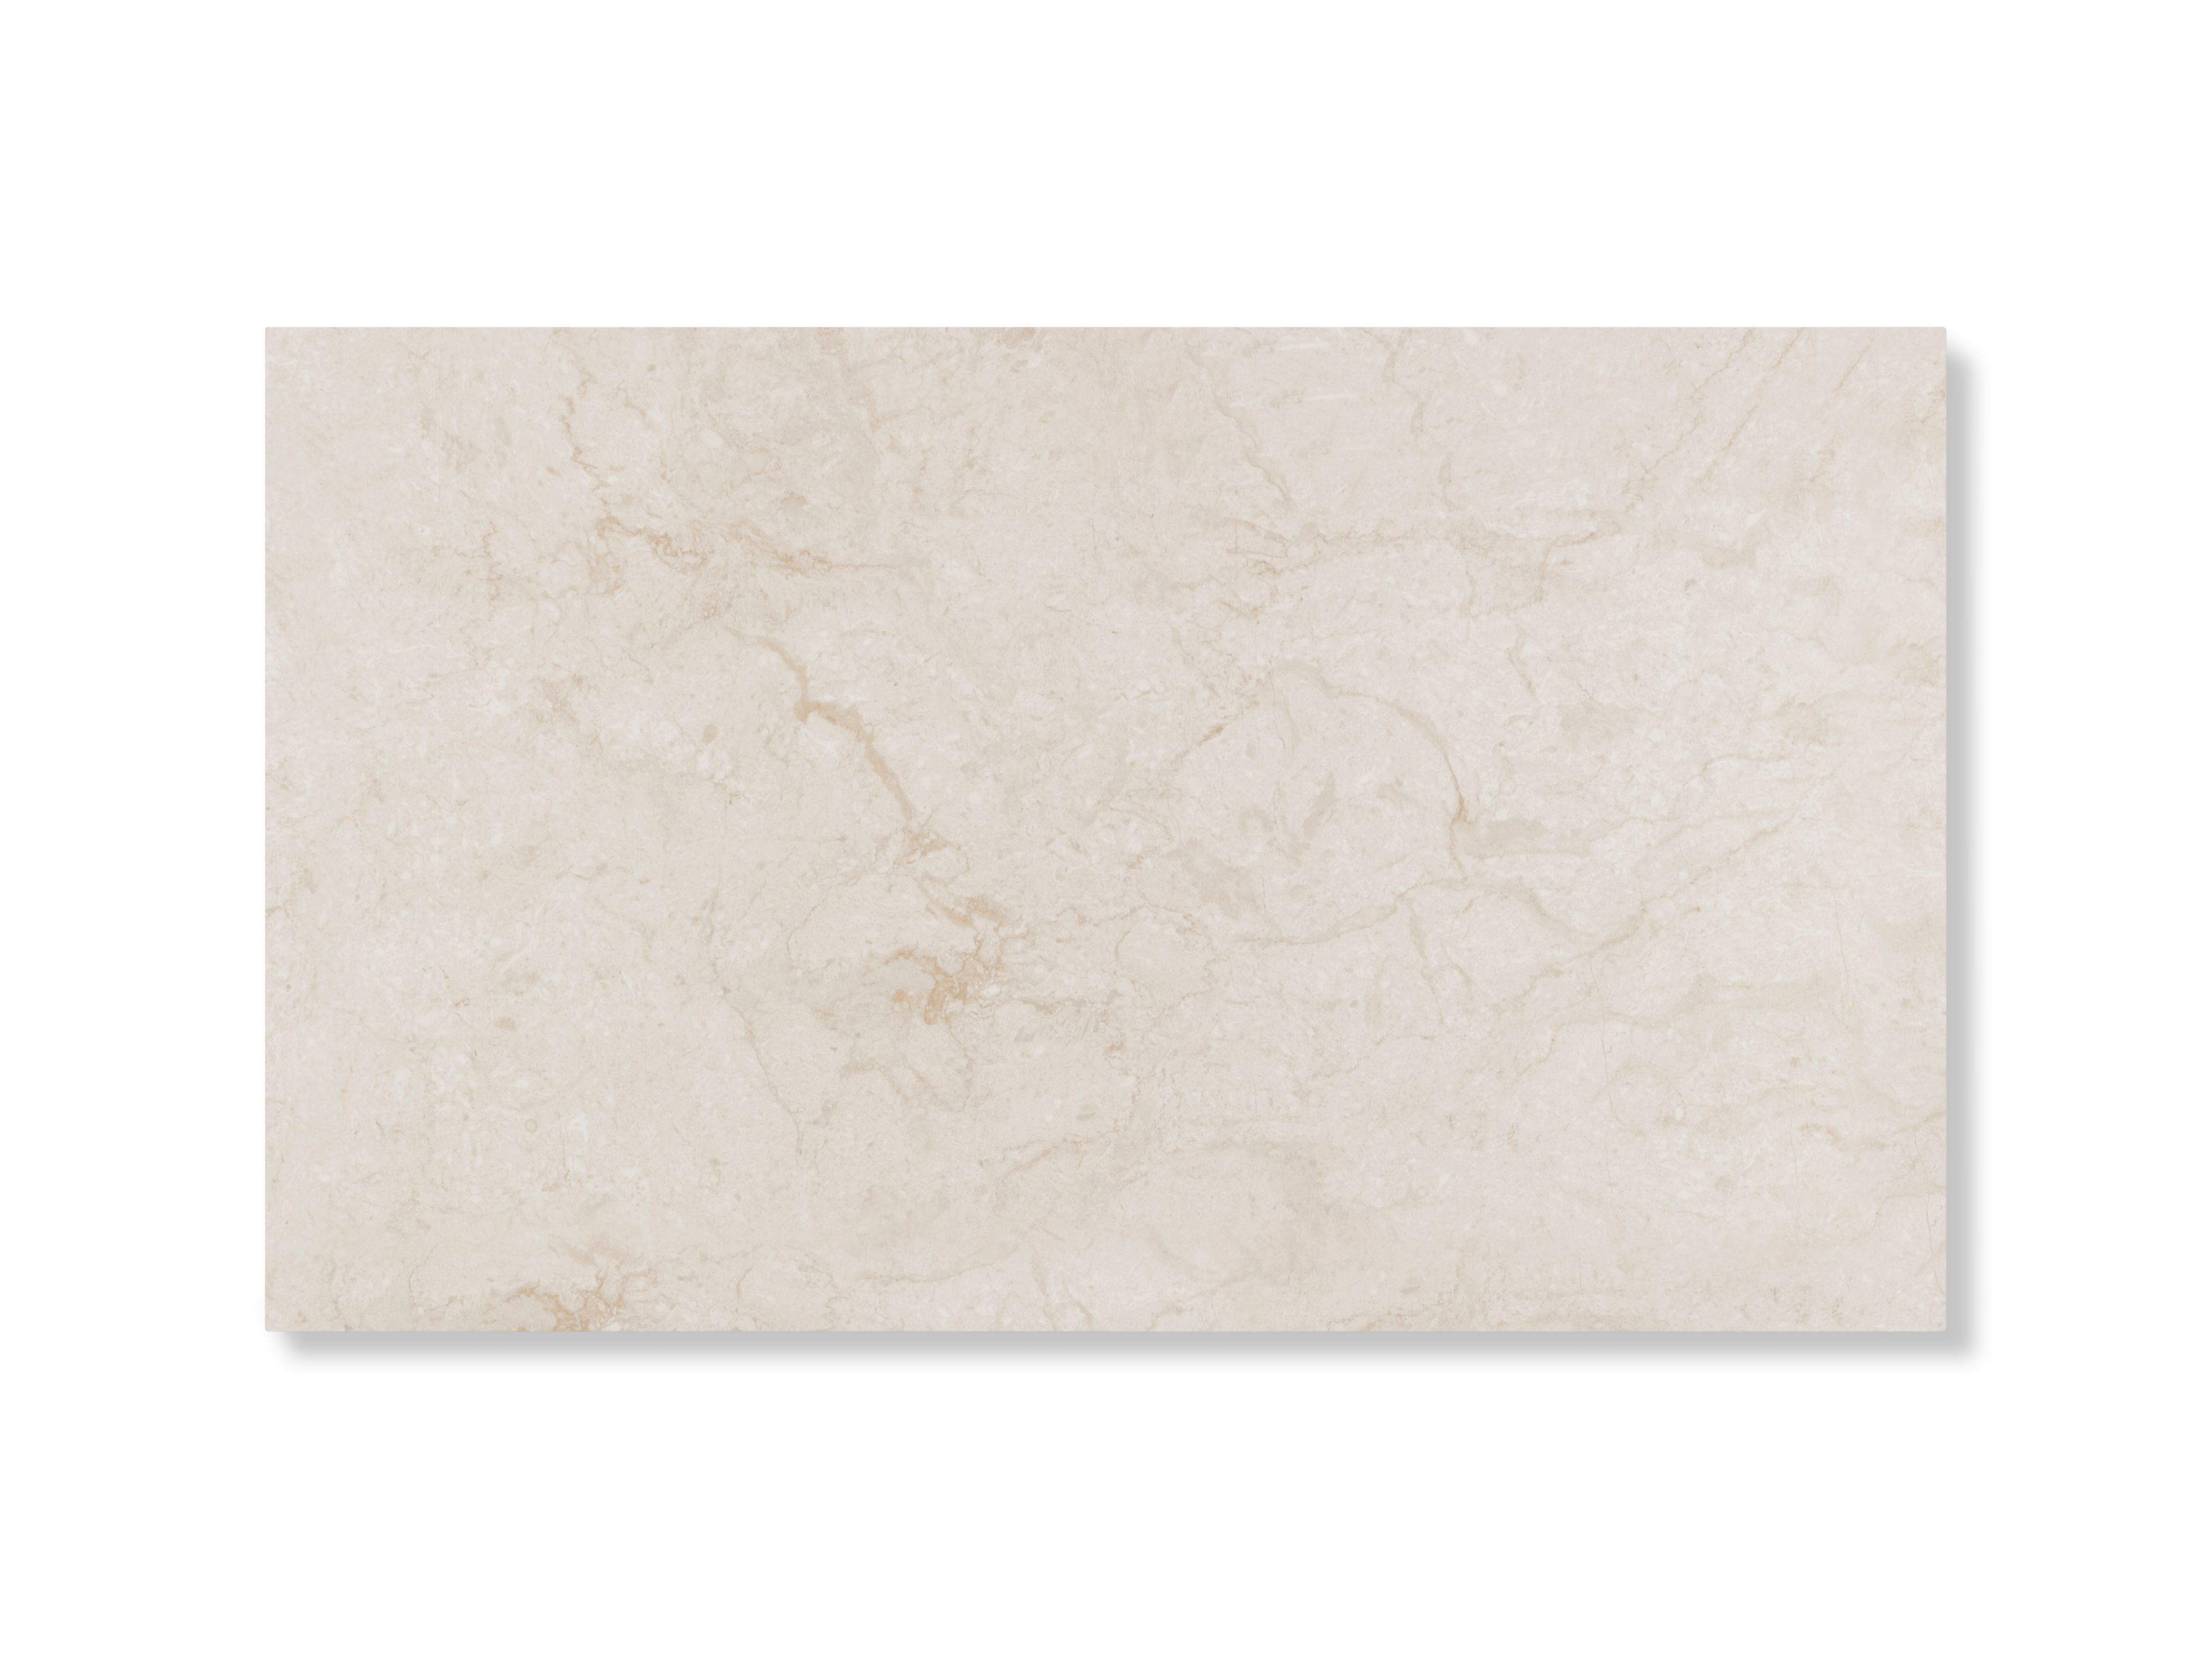 Hartford sand marble stone effect plain ceramic wall floor tile hartford marble sand stone effect plain ceramic wall floor tile pack of 6 dailygadgetfo Images